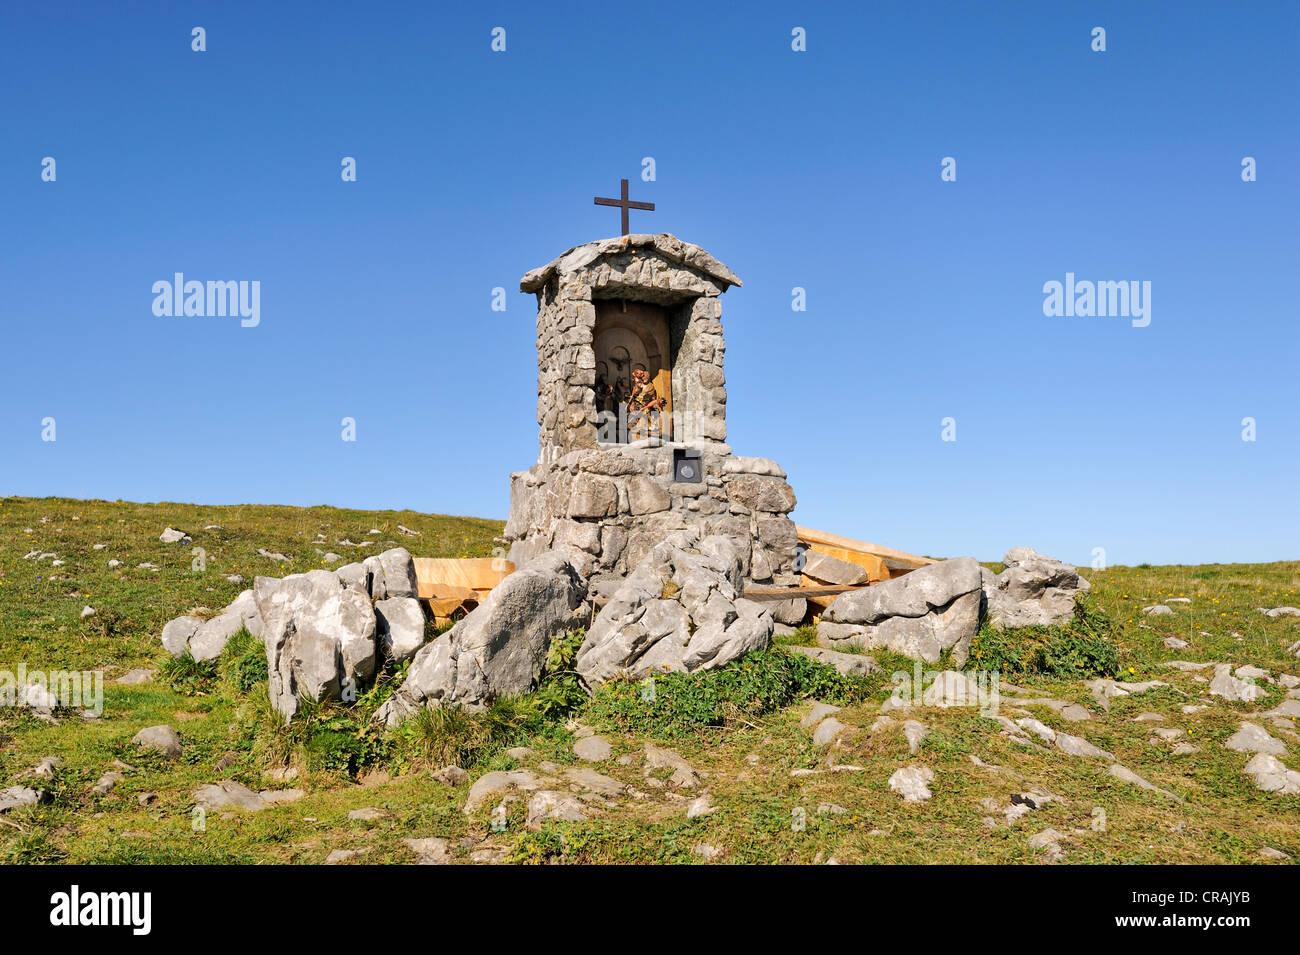 Wayside cross with a small altar and statues of saints on the high plateau Alp Sigel, 1730 m, in the Appenzell Alps - Stock Image